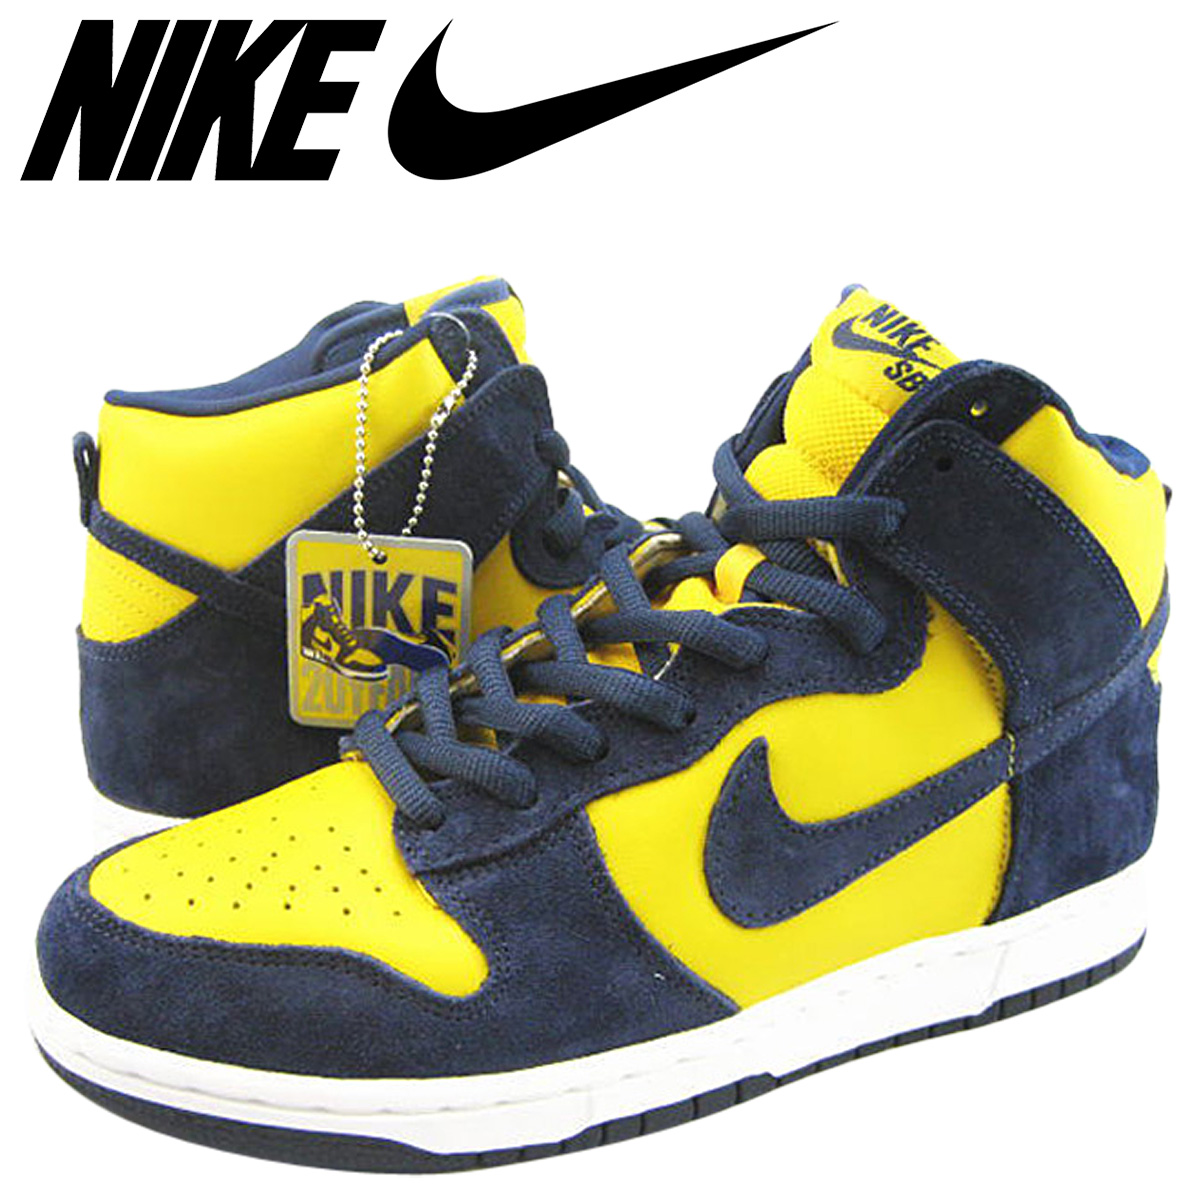 finest selection 4cea0 56a74  27cm yellowing  Nike NIKE dunk sneakers DUNK HIGH PRO SB NAV YEL TRUE TO  YOUR SCHOOL dunk high professional S B 305,050-741 navy yellow men